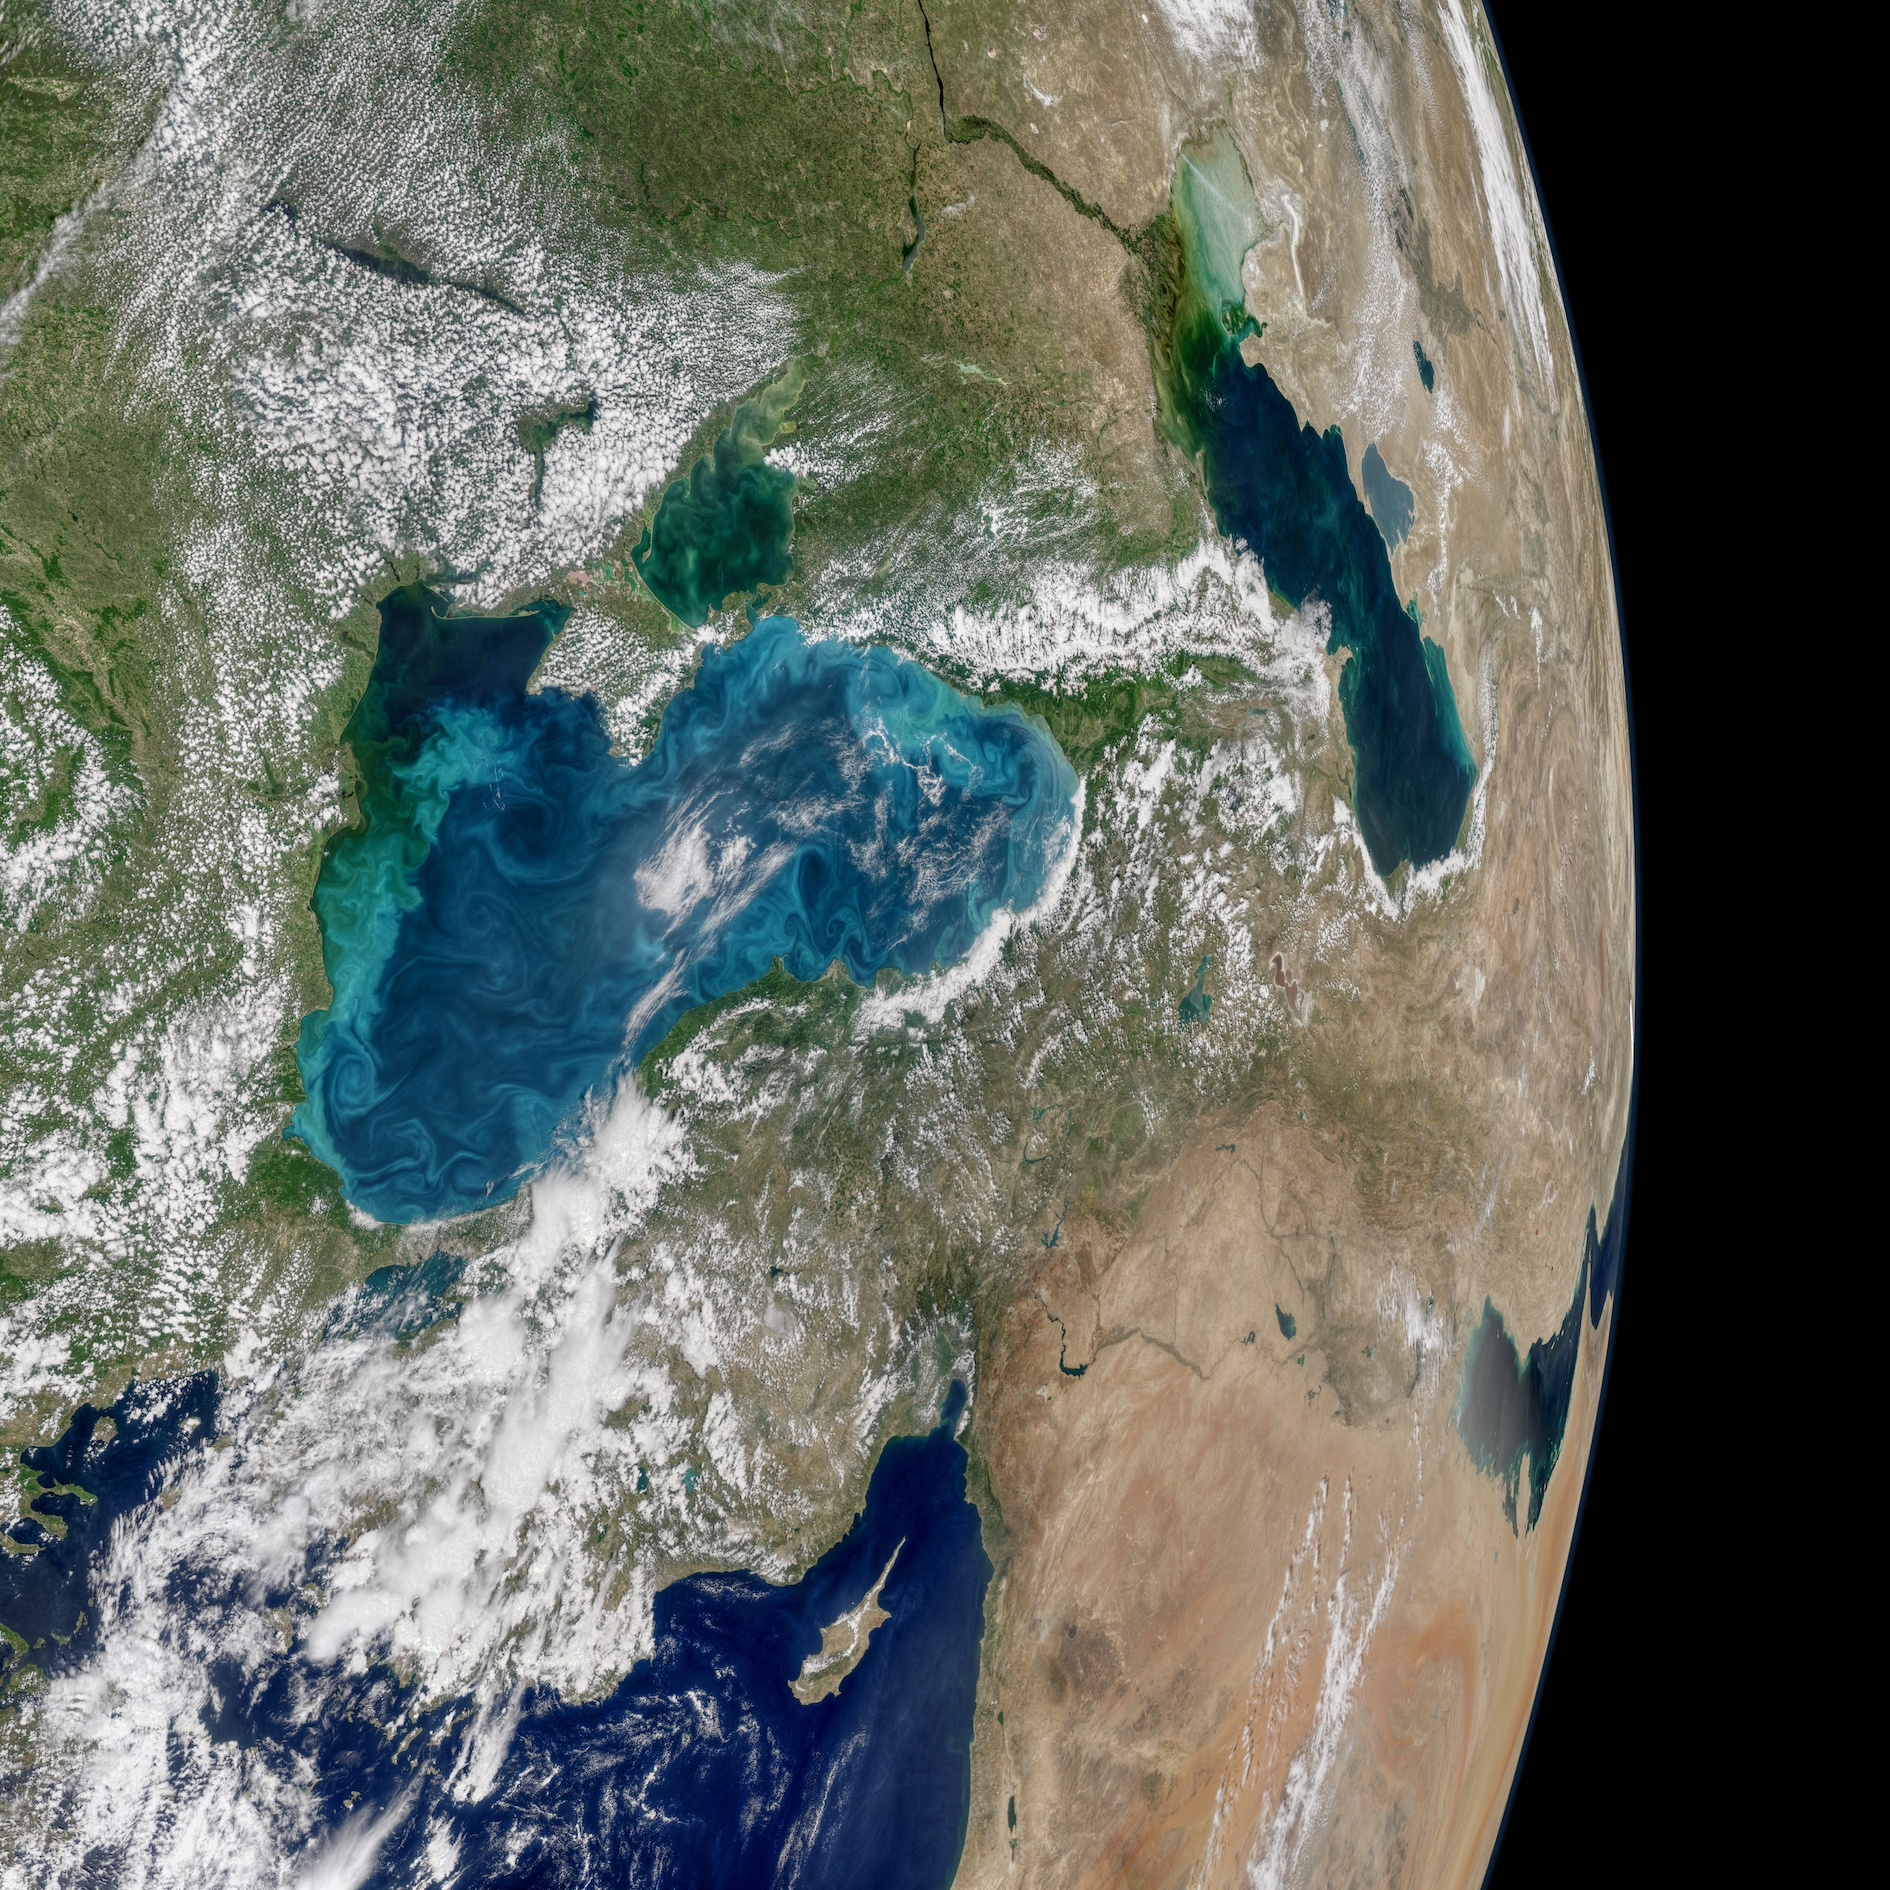 Today's Image of the Day comes thanks to the NASA Earth Observatory and features a look at phytoplankton swirls in the Black Sea.